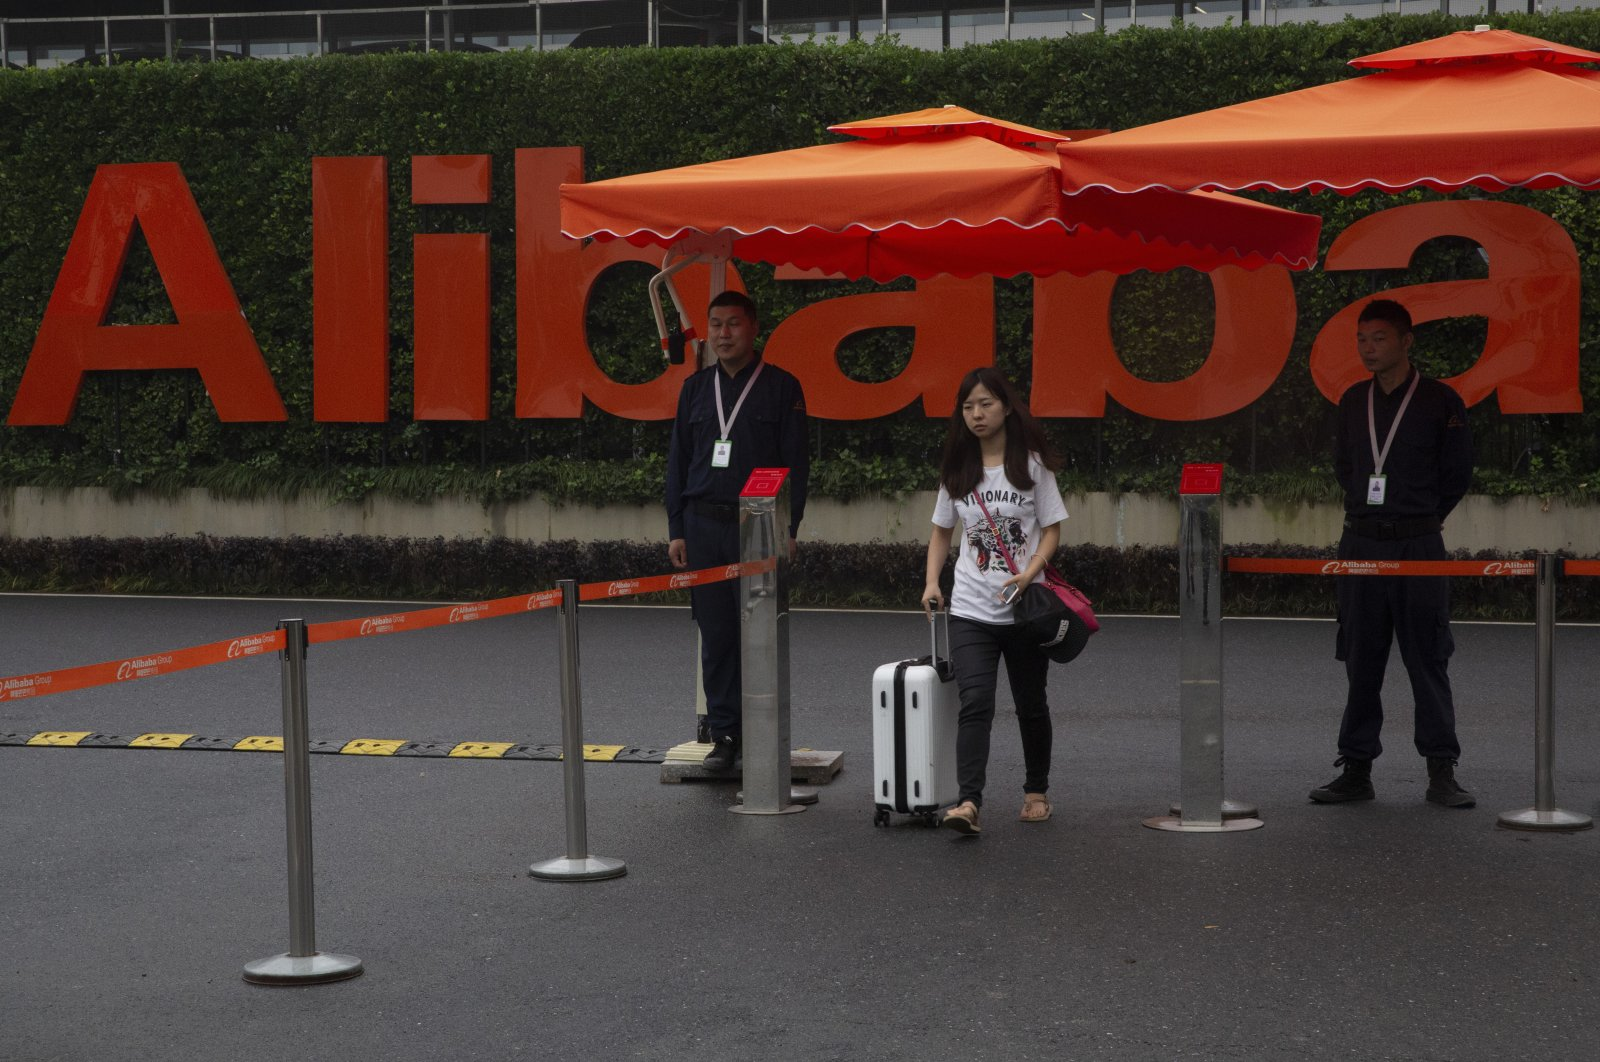 A woman pushing a trolley bag passes by security guards at the entrance to the Alibaba Group headquarters in Hangzhou, in Zhejiang province, eastern China, May 27, 2016. (AP Photo)